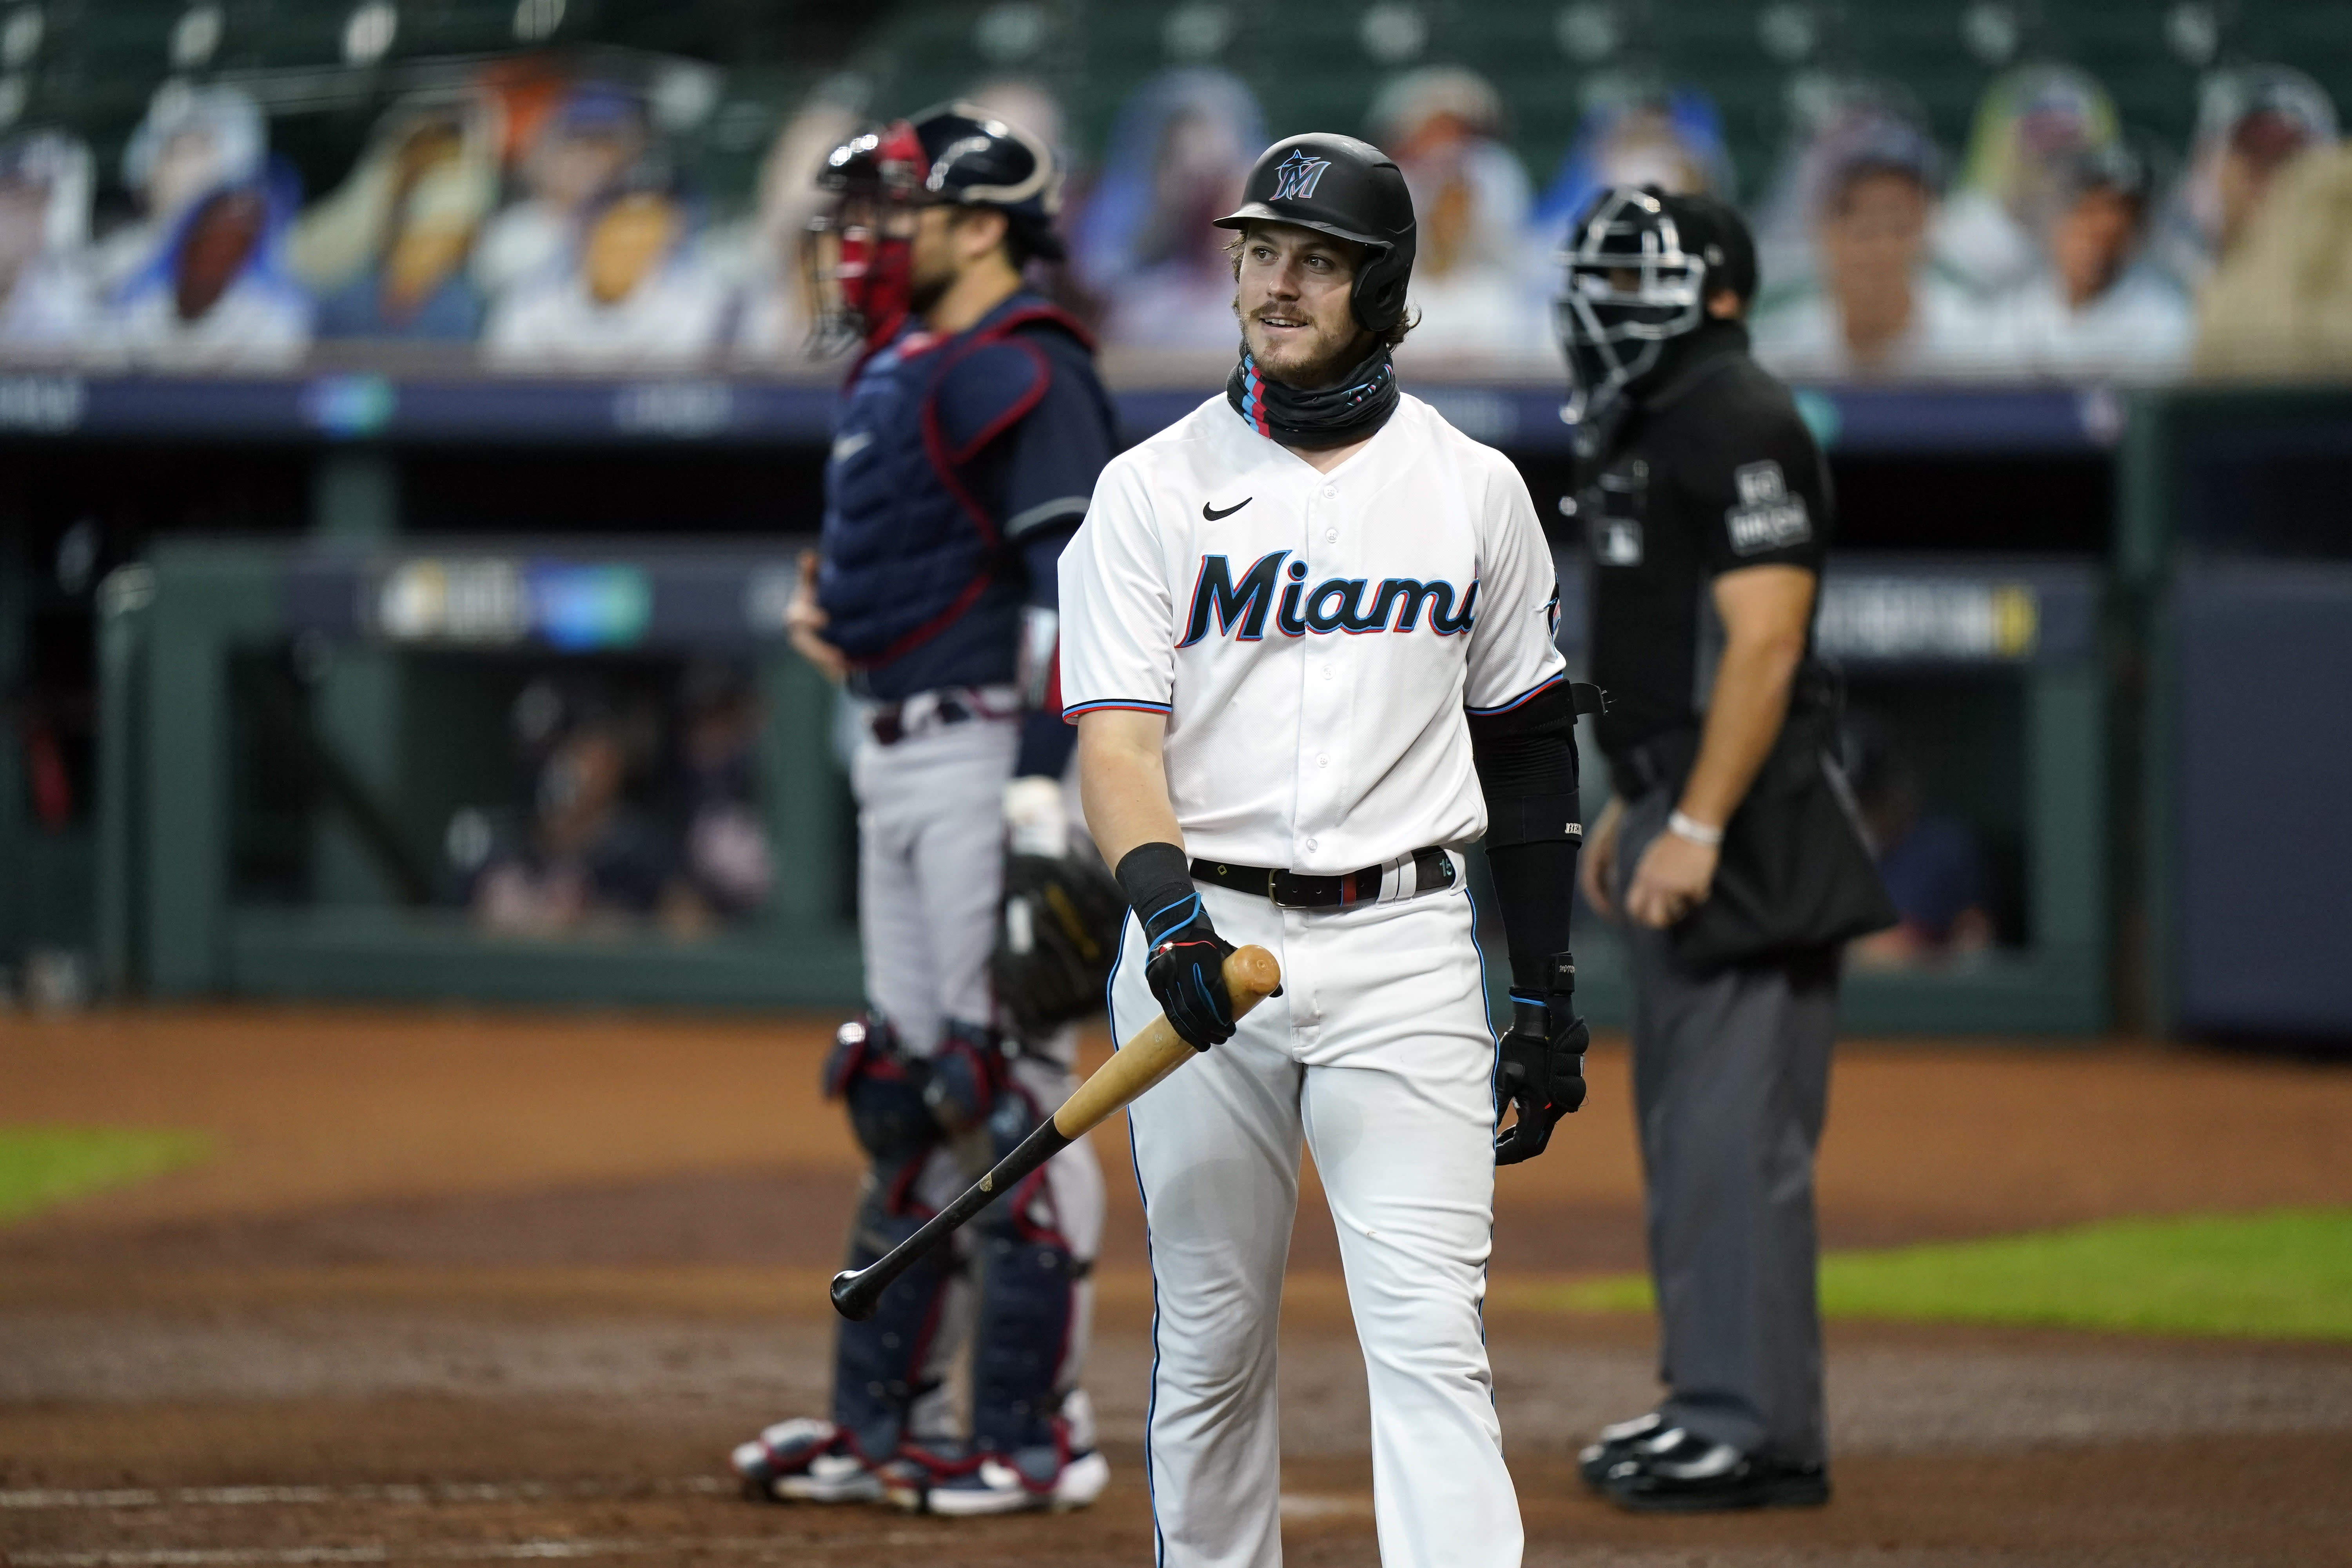 Miami Marlins' Brian Anderson (15) reacts after striking out in the first inning in Game 3 of a baseball National League Division Series against the Atlanta Braves, Thursday, Oct. 8, 2020, in Houston. (AP Photo/David J. Phillip)